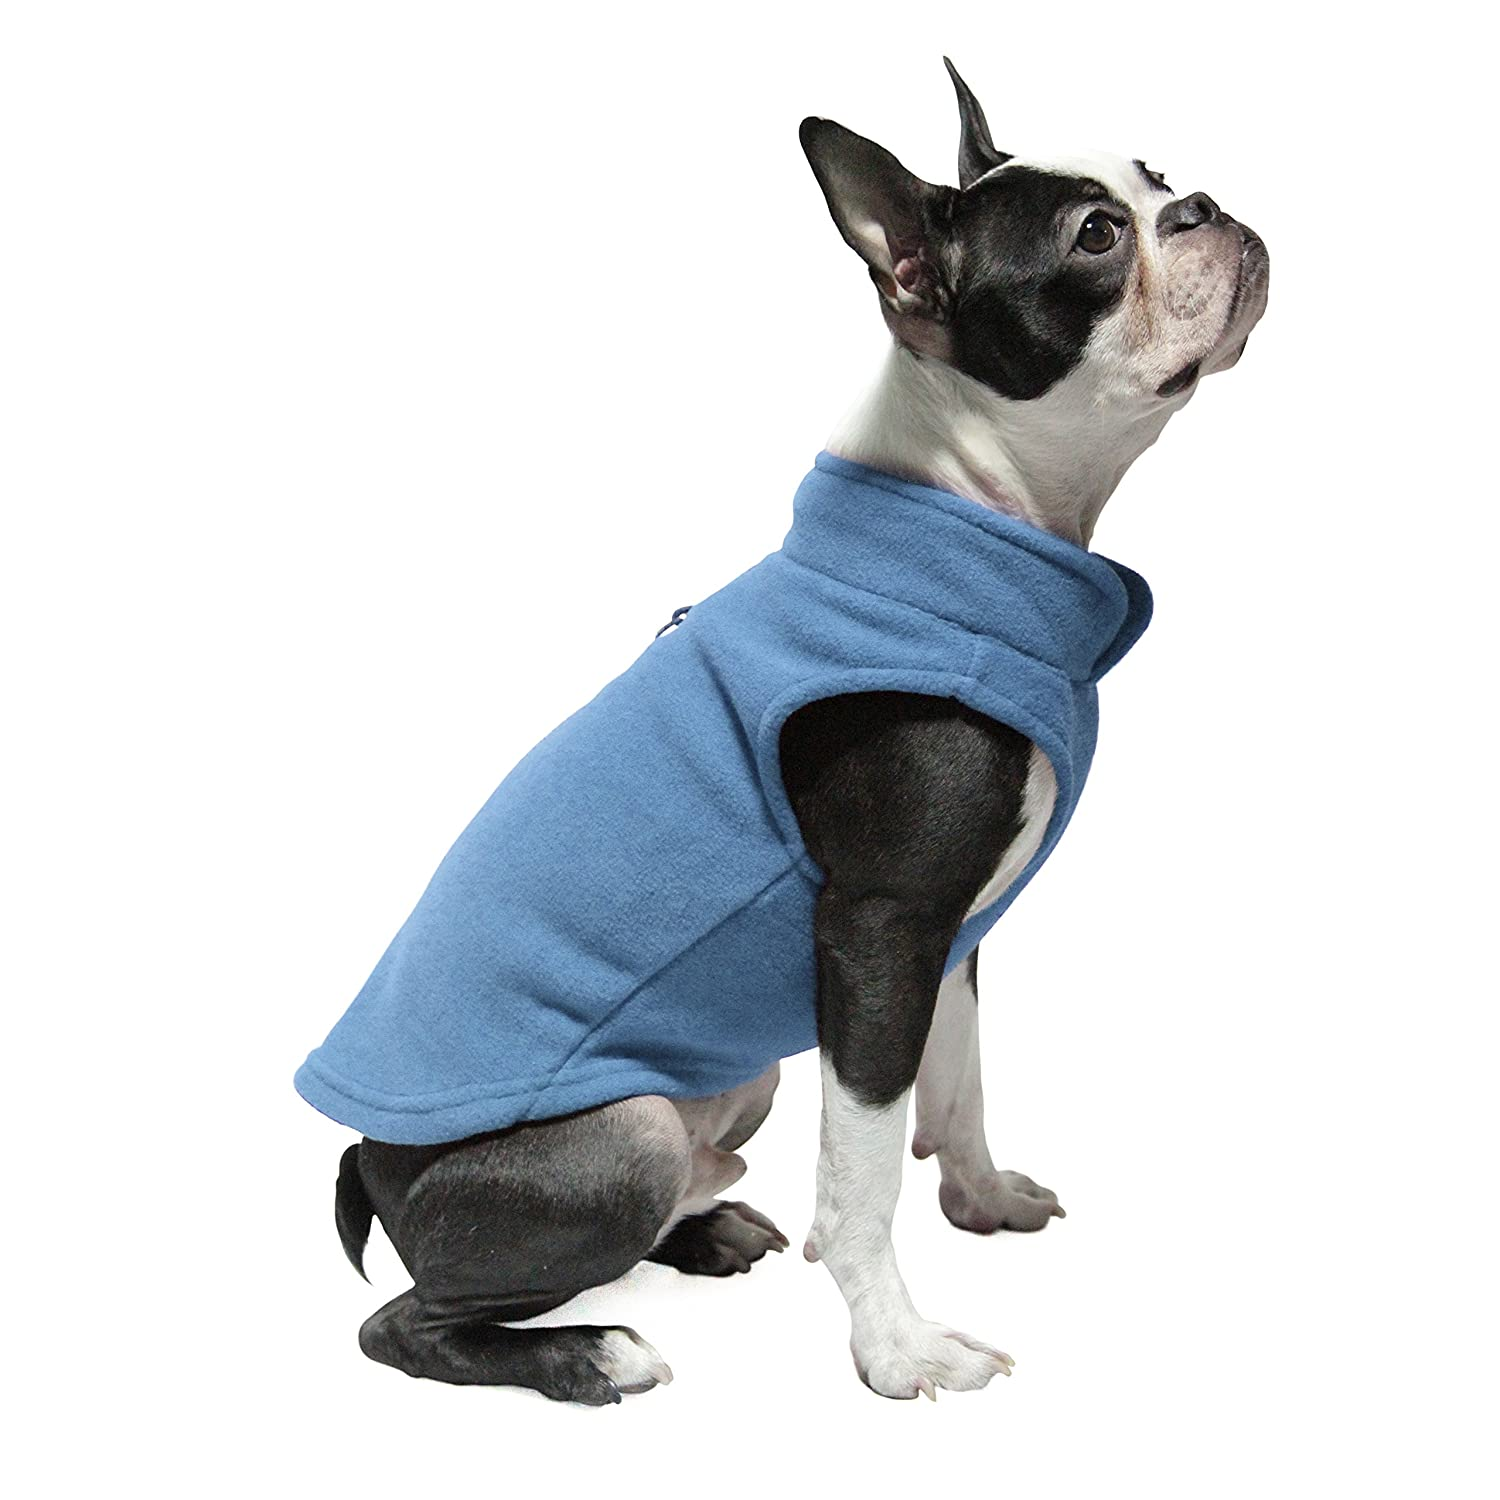 Gooby 72106-BLU-XL Every Day Fleece Cold Weather Dog Vest for Small Dogs, X-Large Chest (18.5), BLUE X-Large Chest (18.5) Gooby Pet